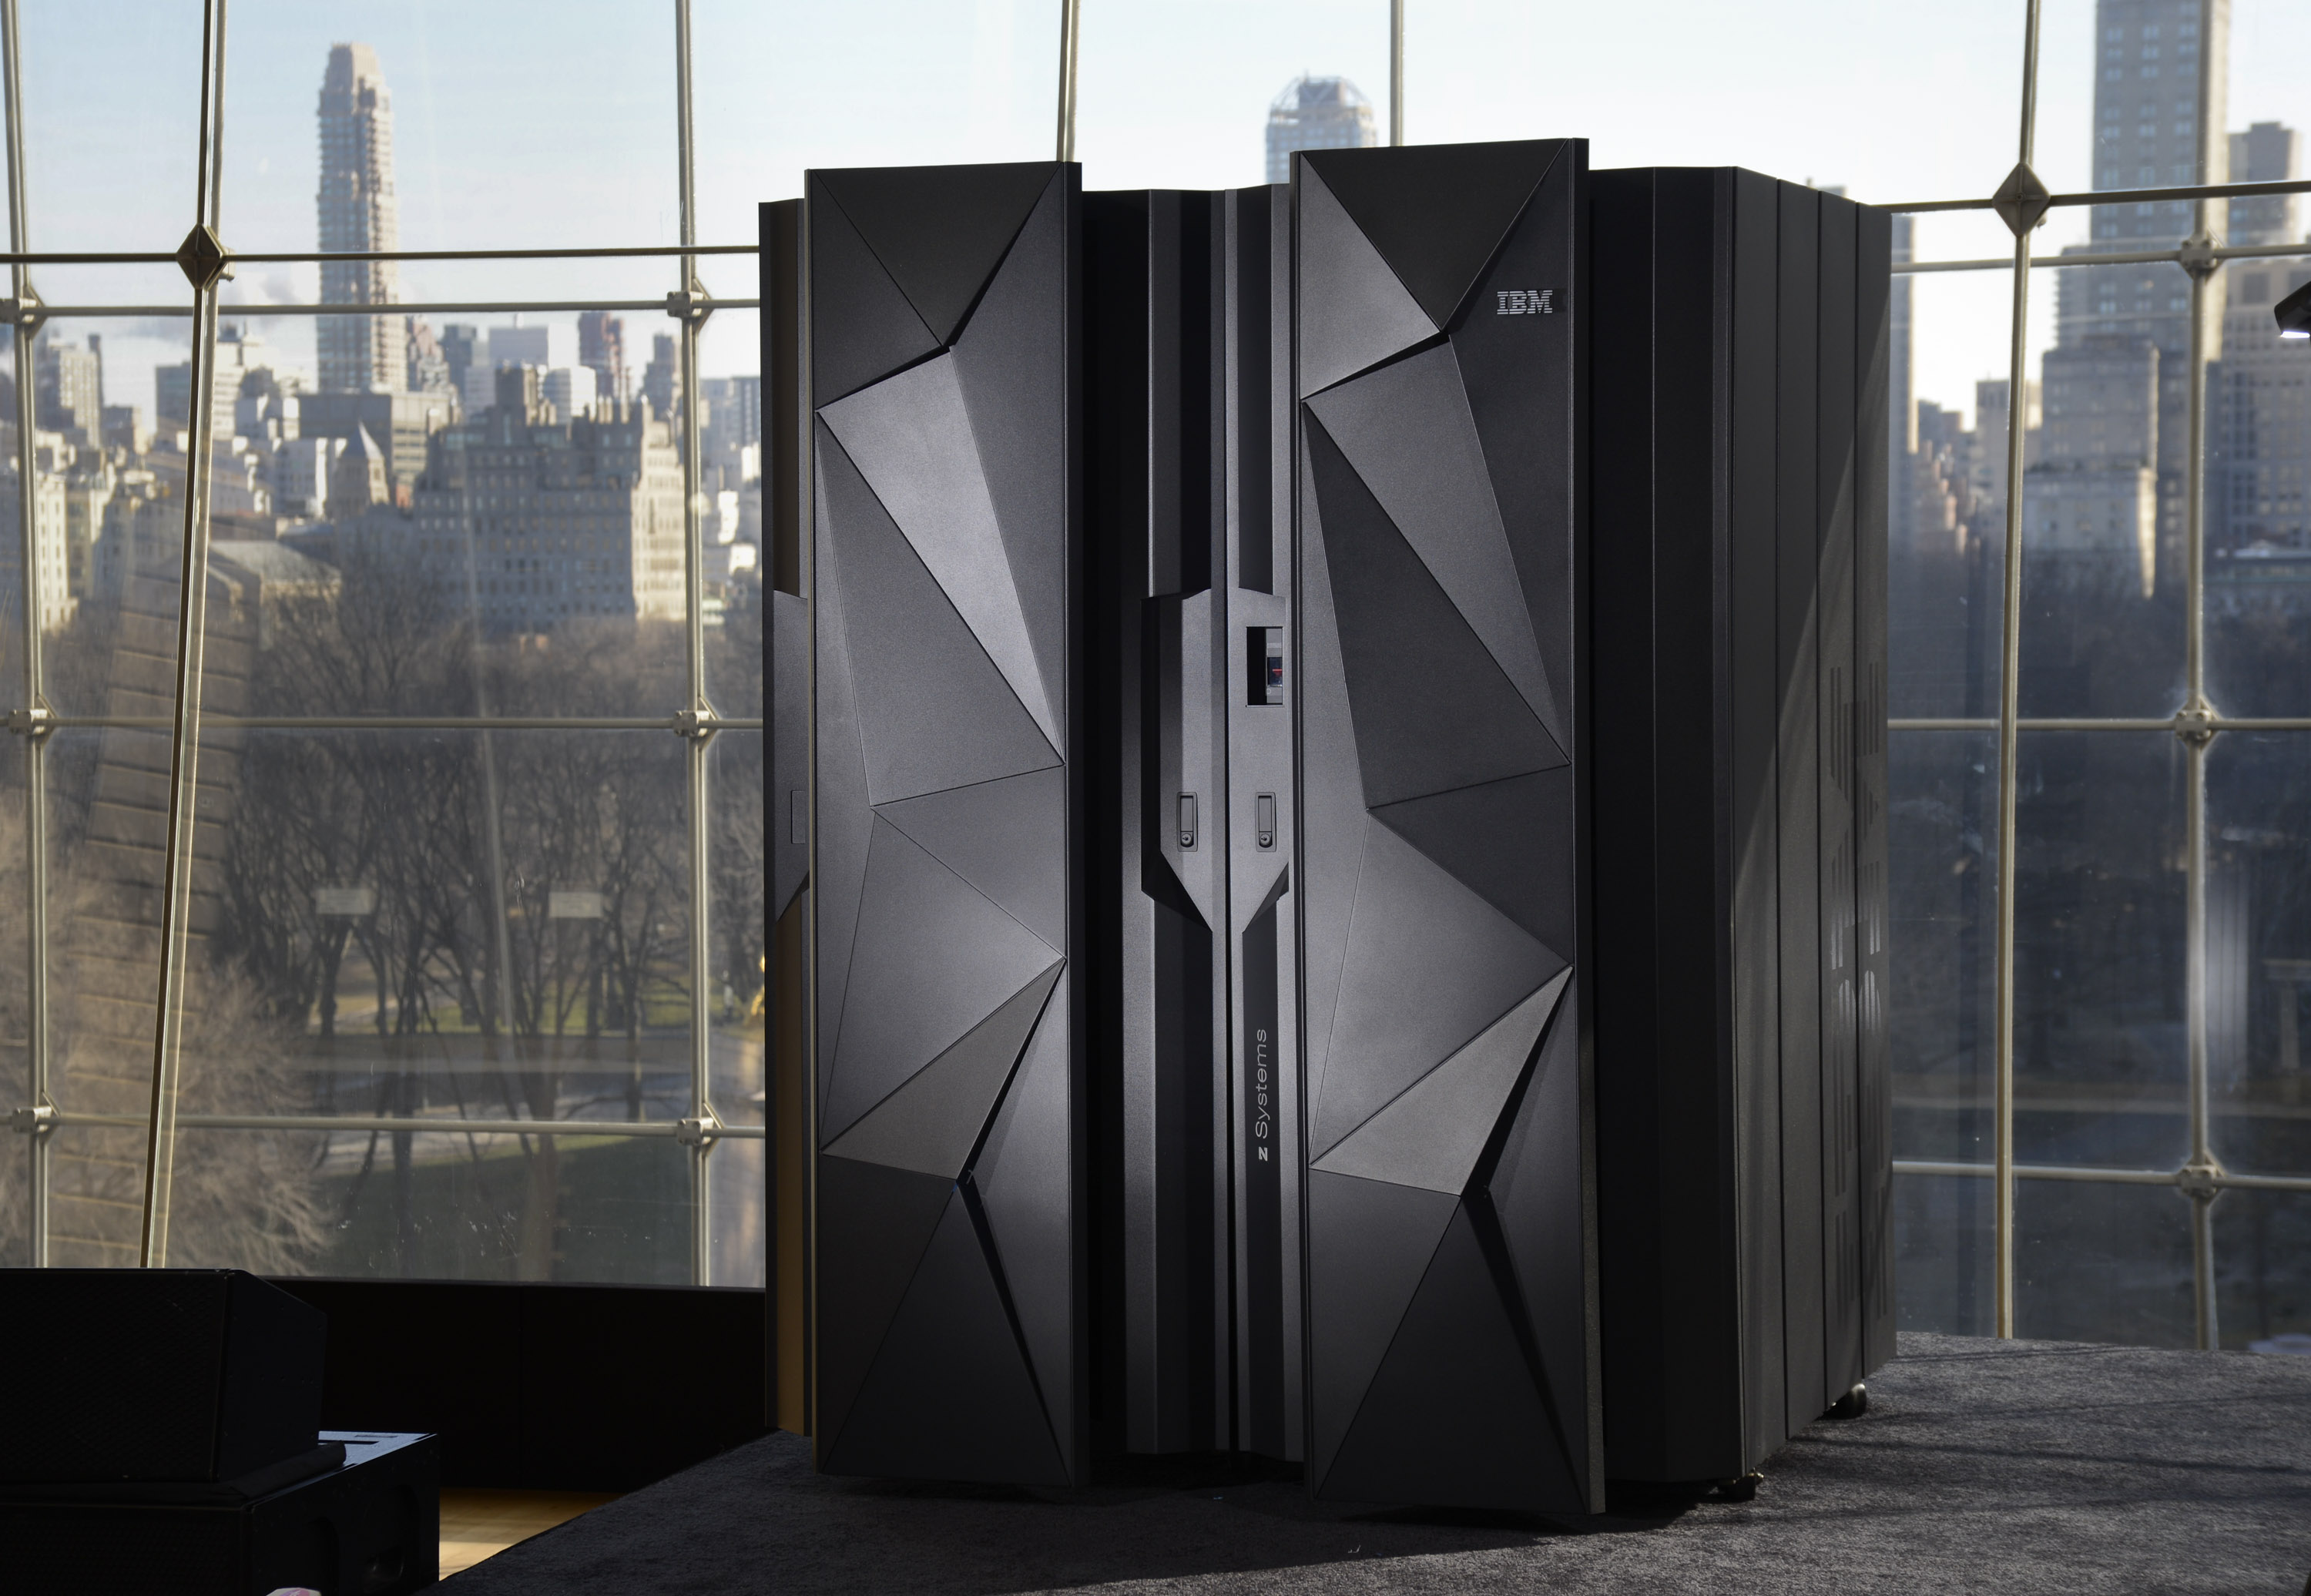 IBM - Queen of Cloud Computing Not Forgetting Mainframe